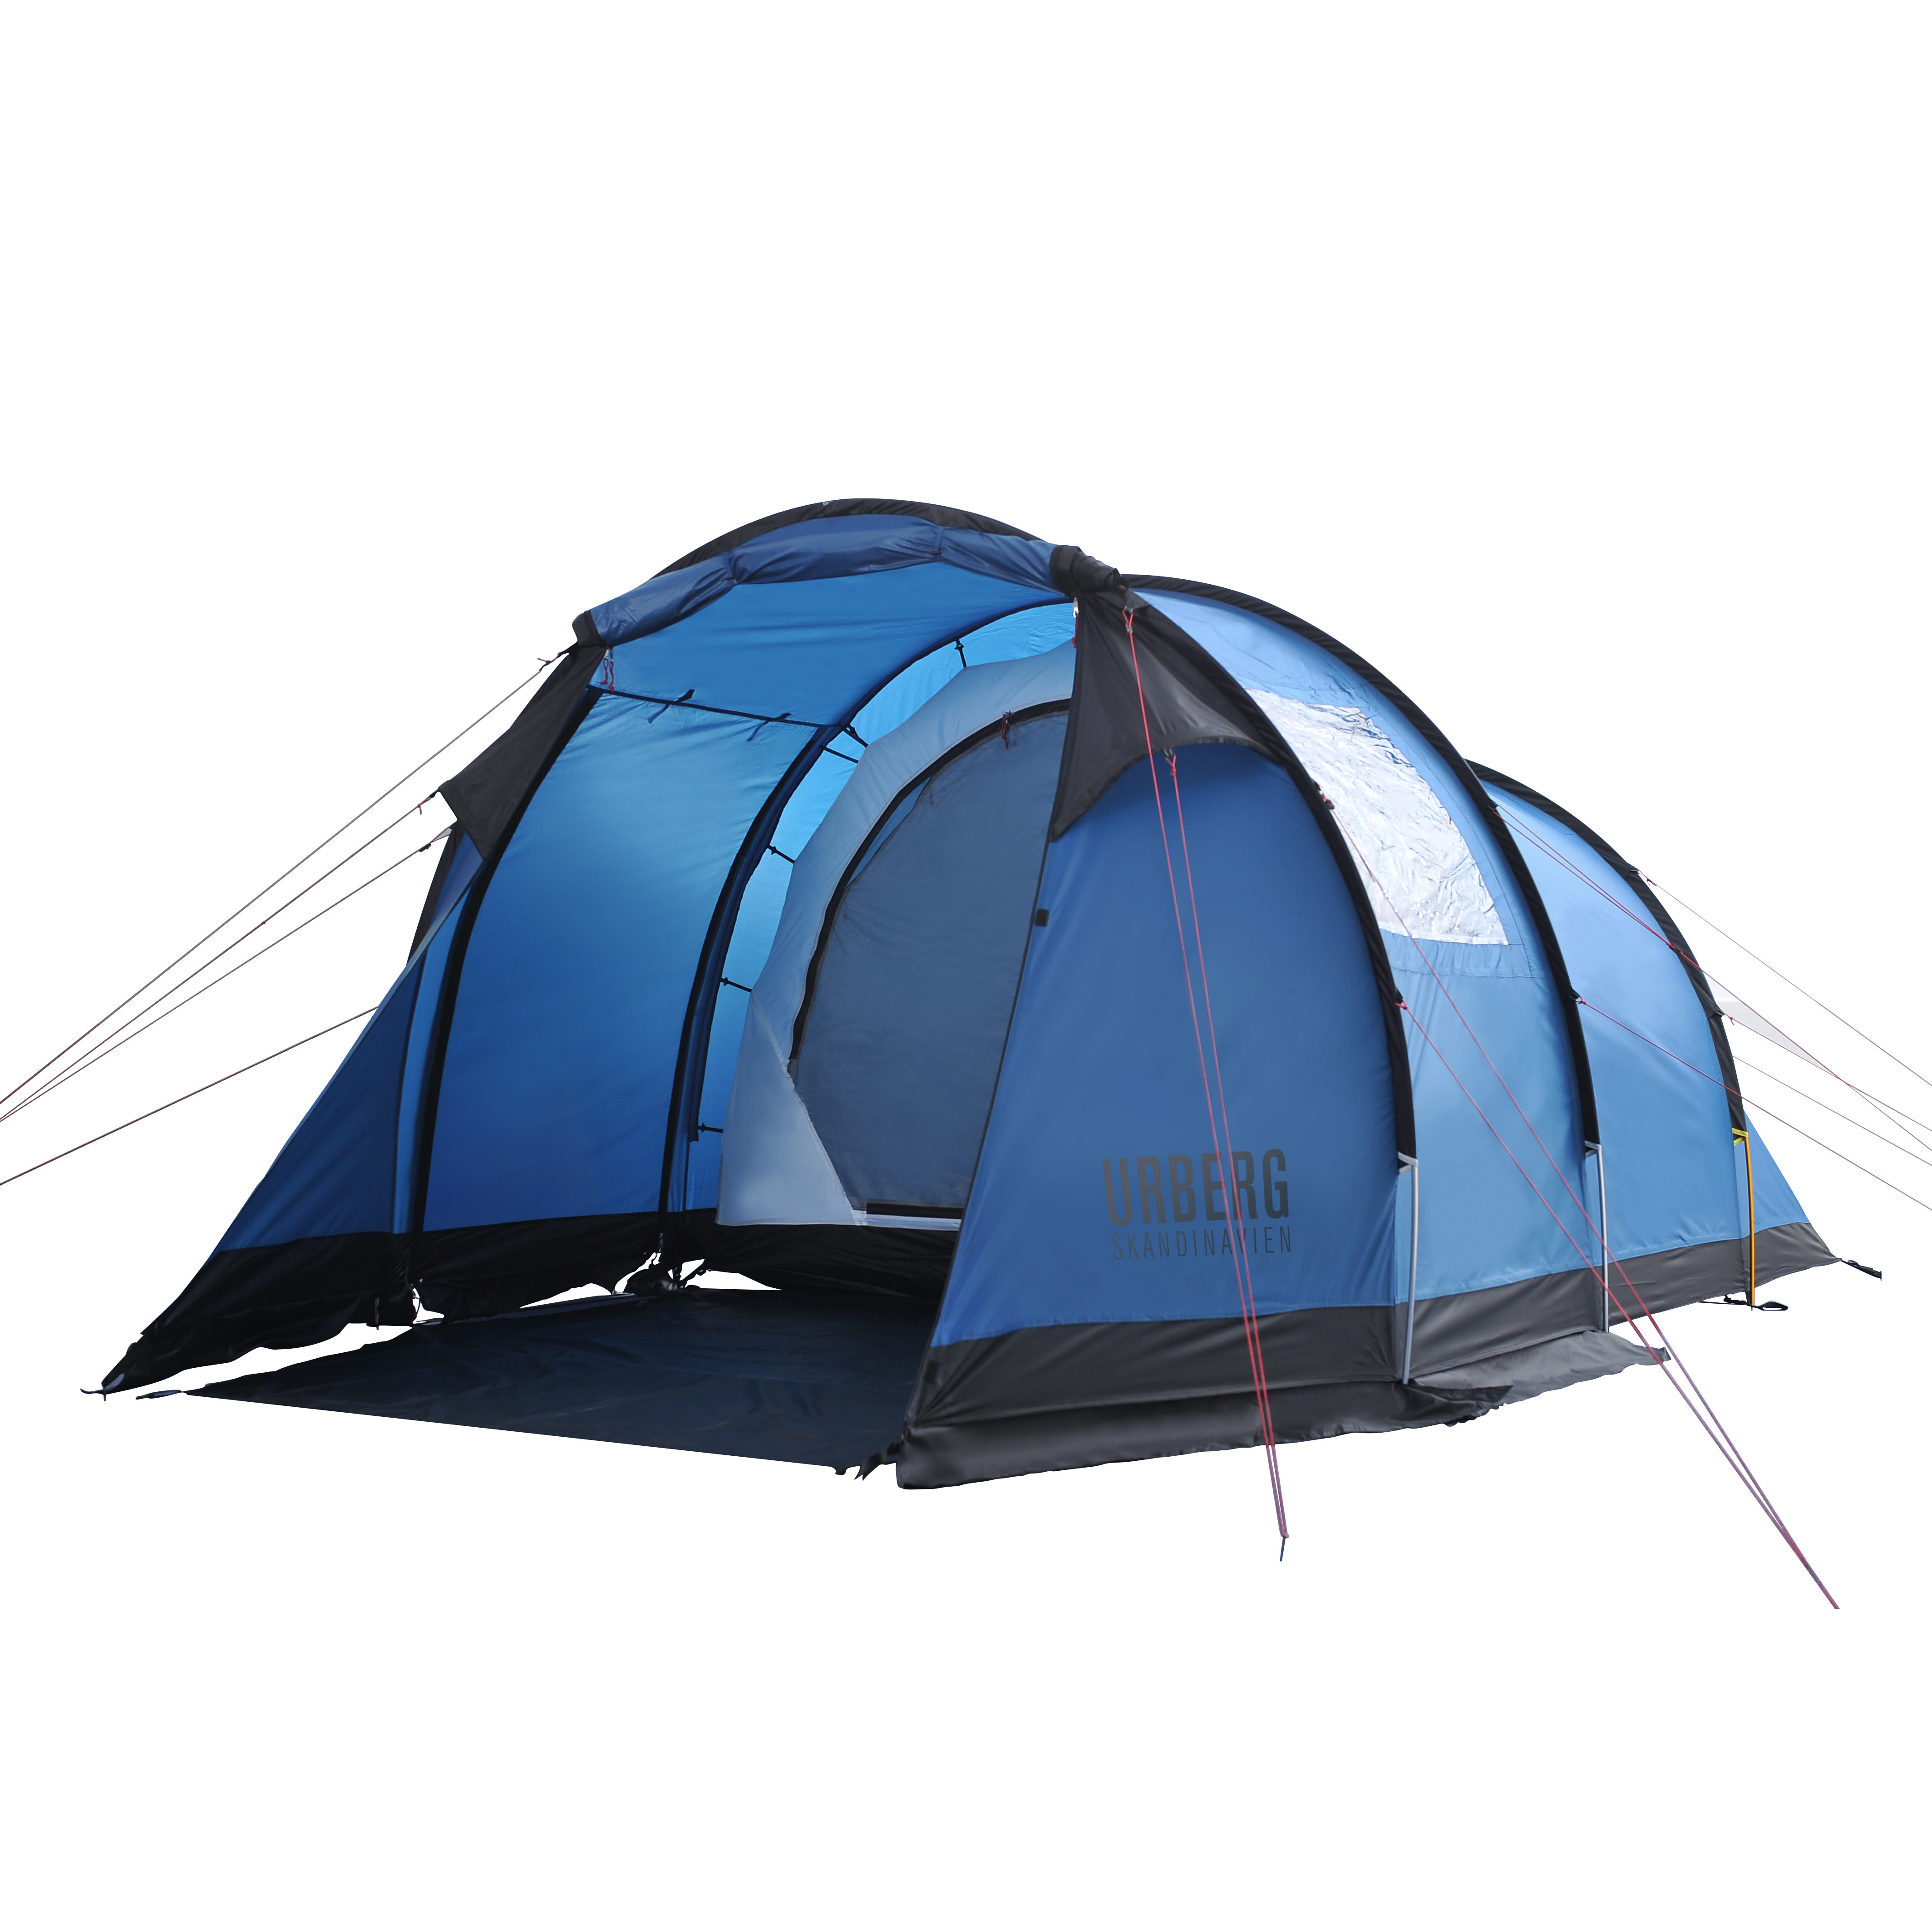 Kjøp Urberg 4 Person Tunnel Tent G3 fra Outnorth